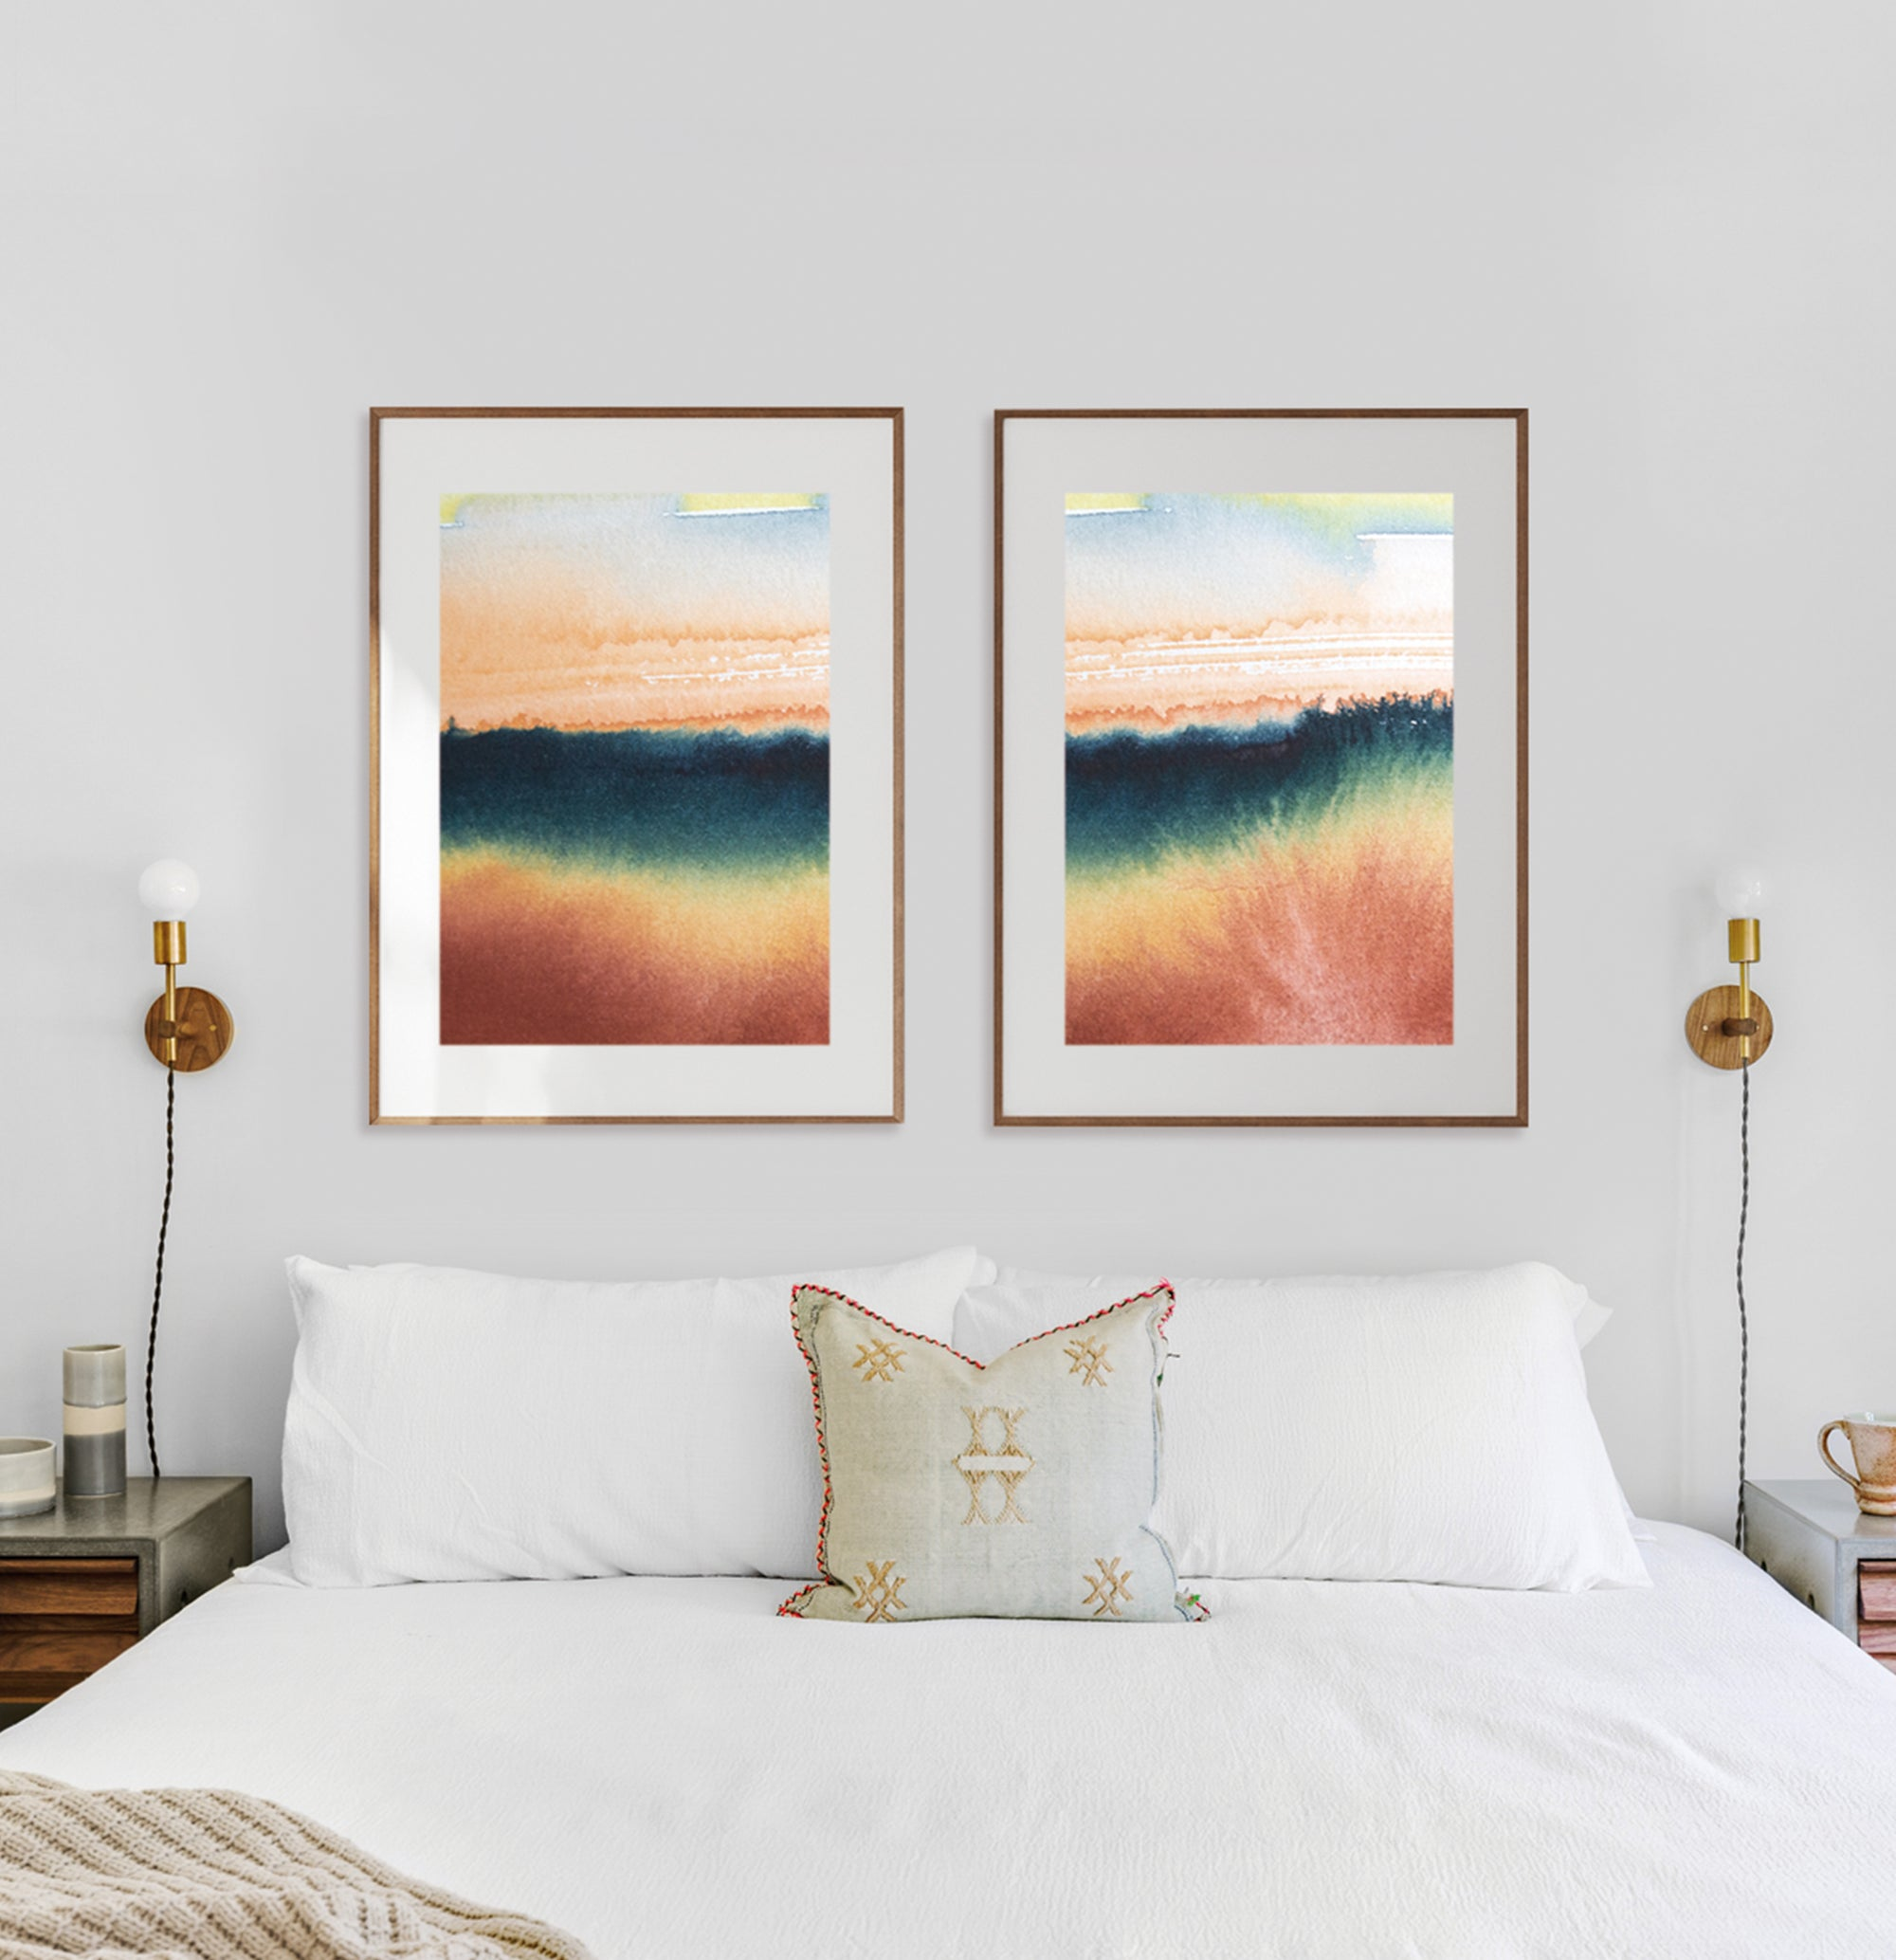 Image of 'After the Storm' series